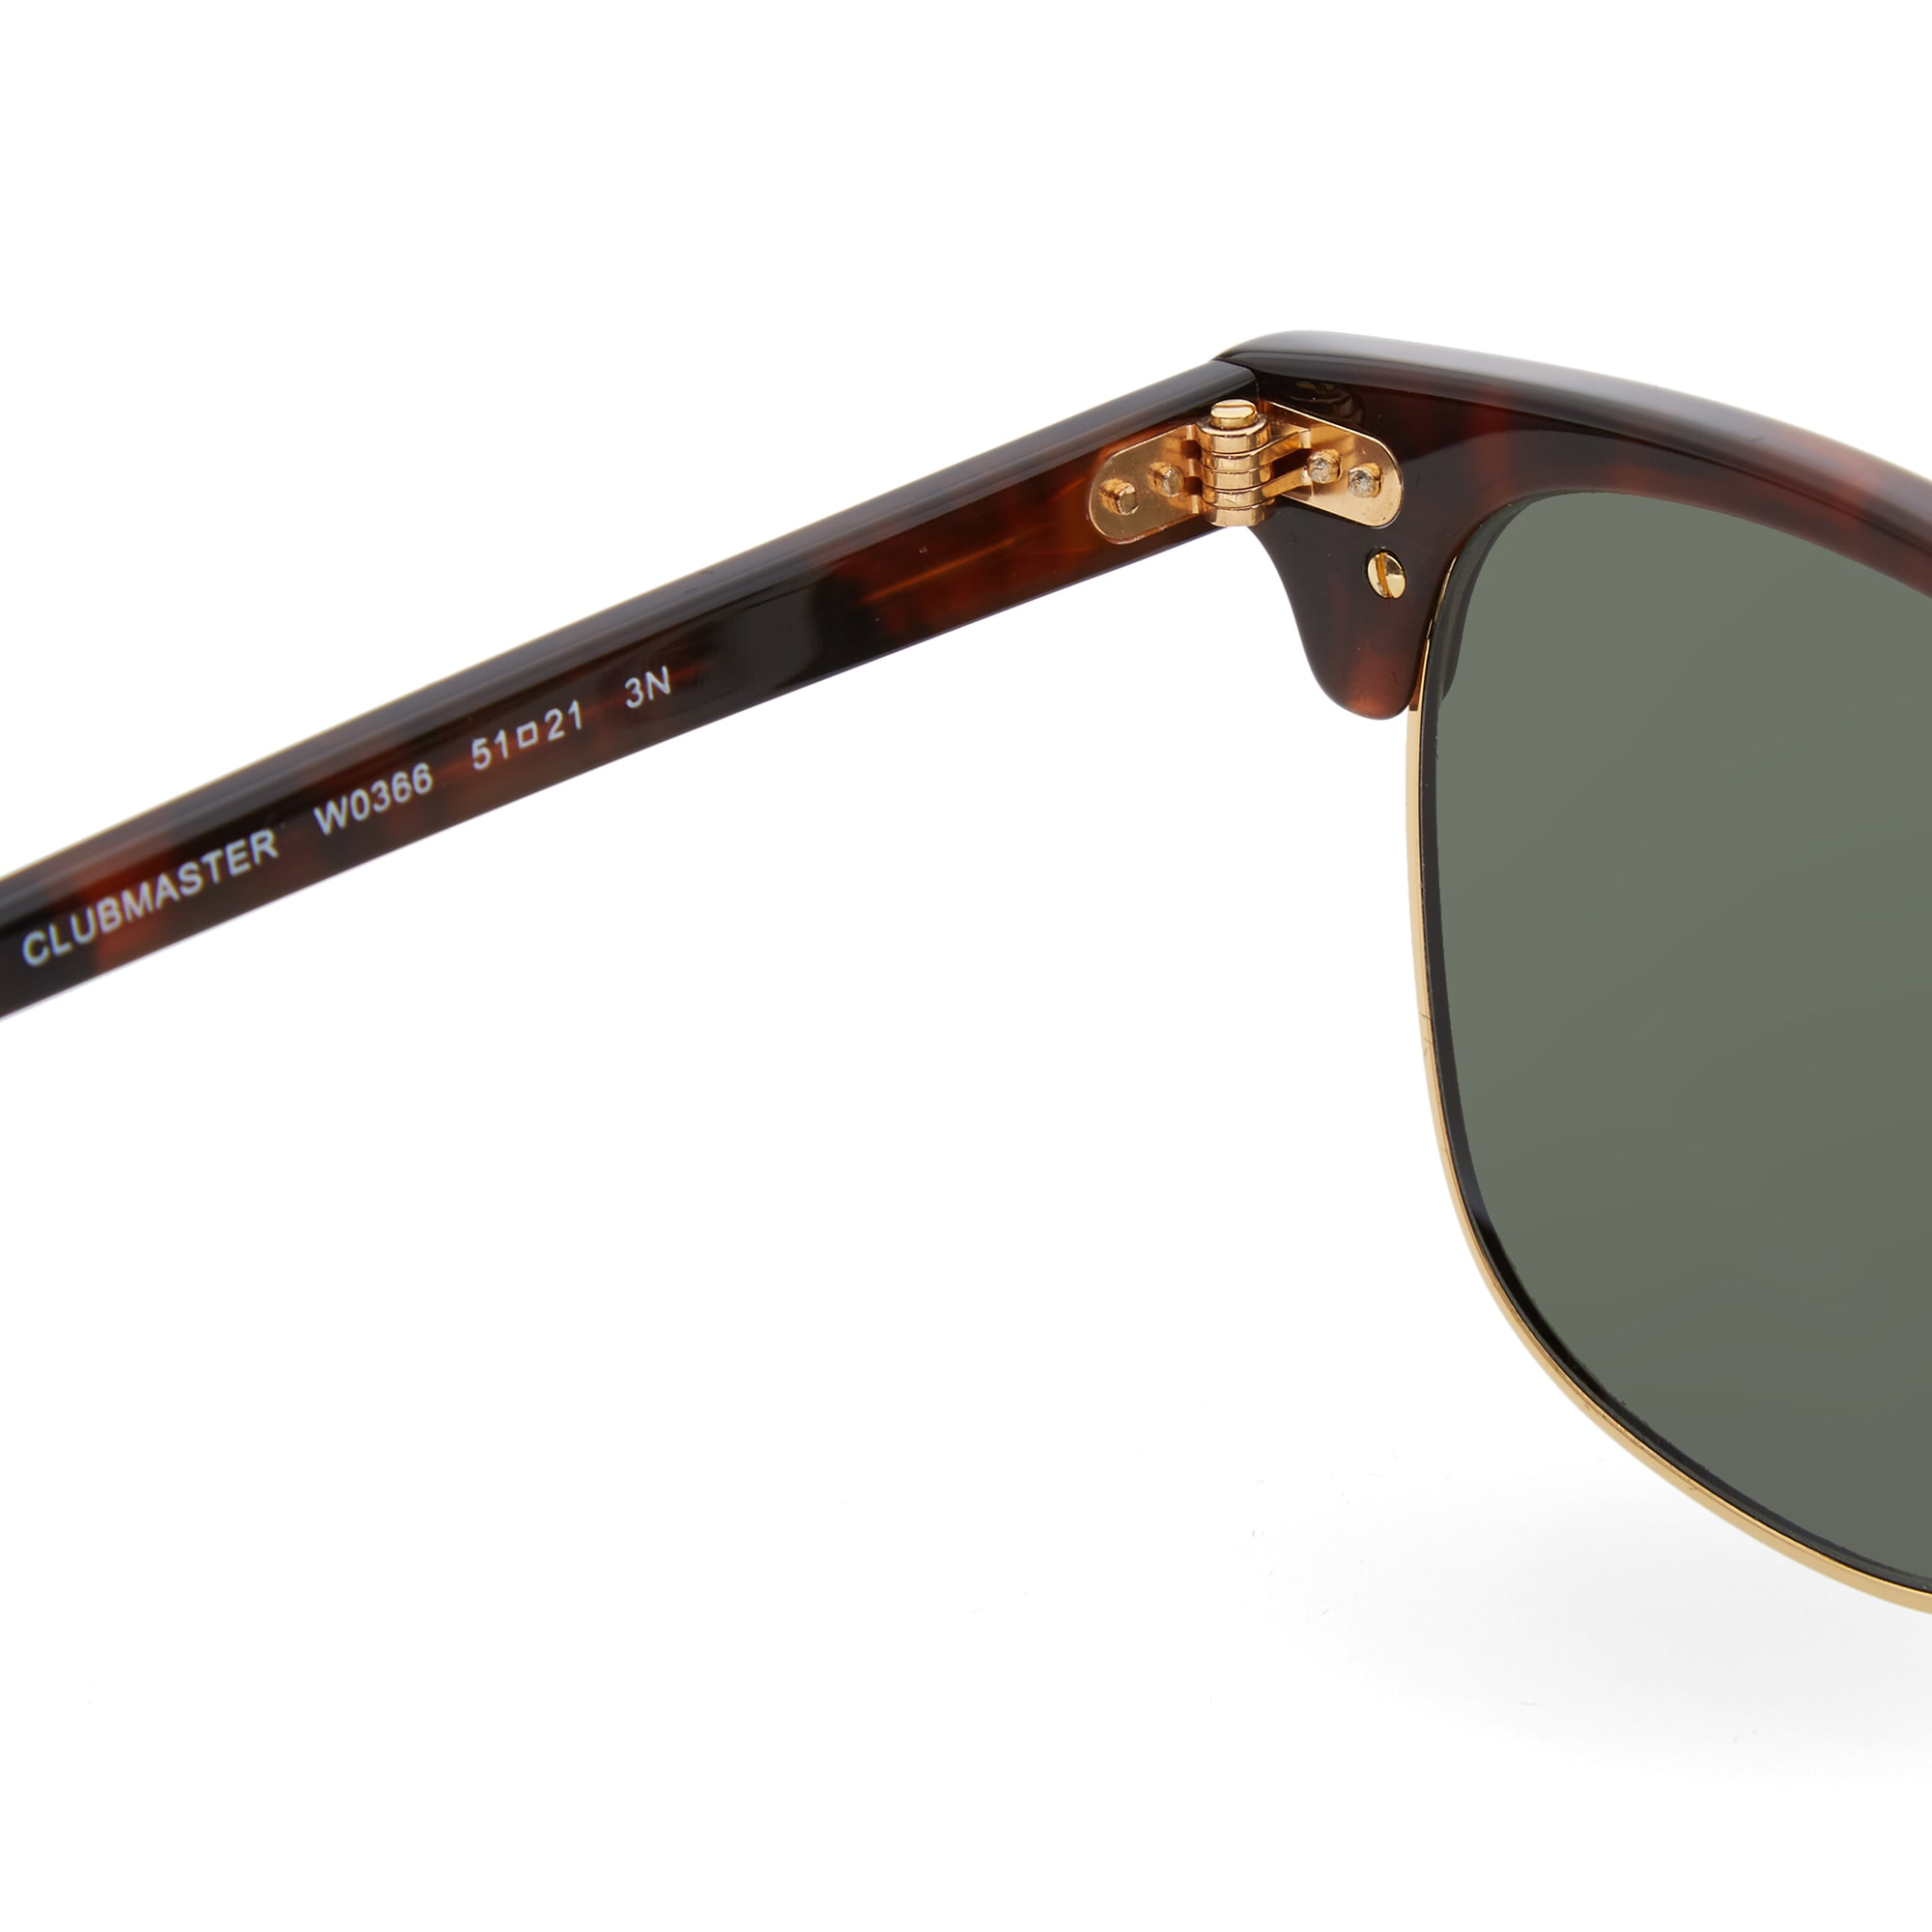 Ray Ban Clubmaster Tortoise Sunglasses Rb3016 W0366 | Louisiana ...